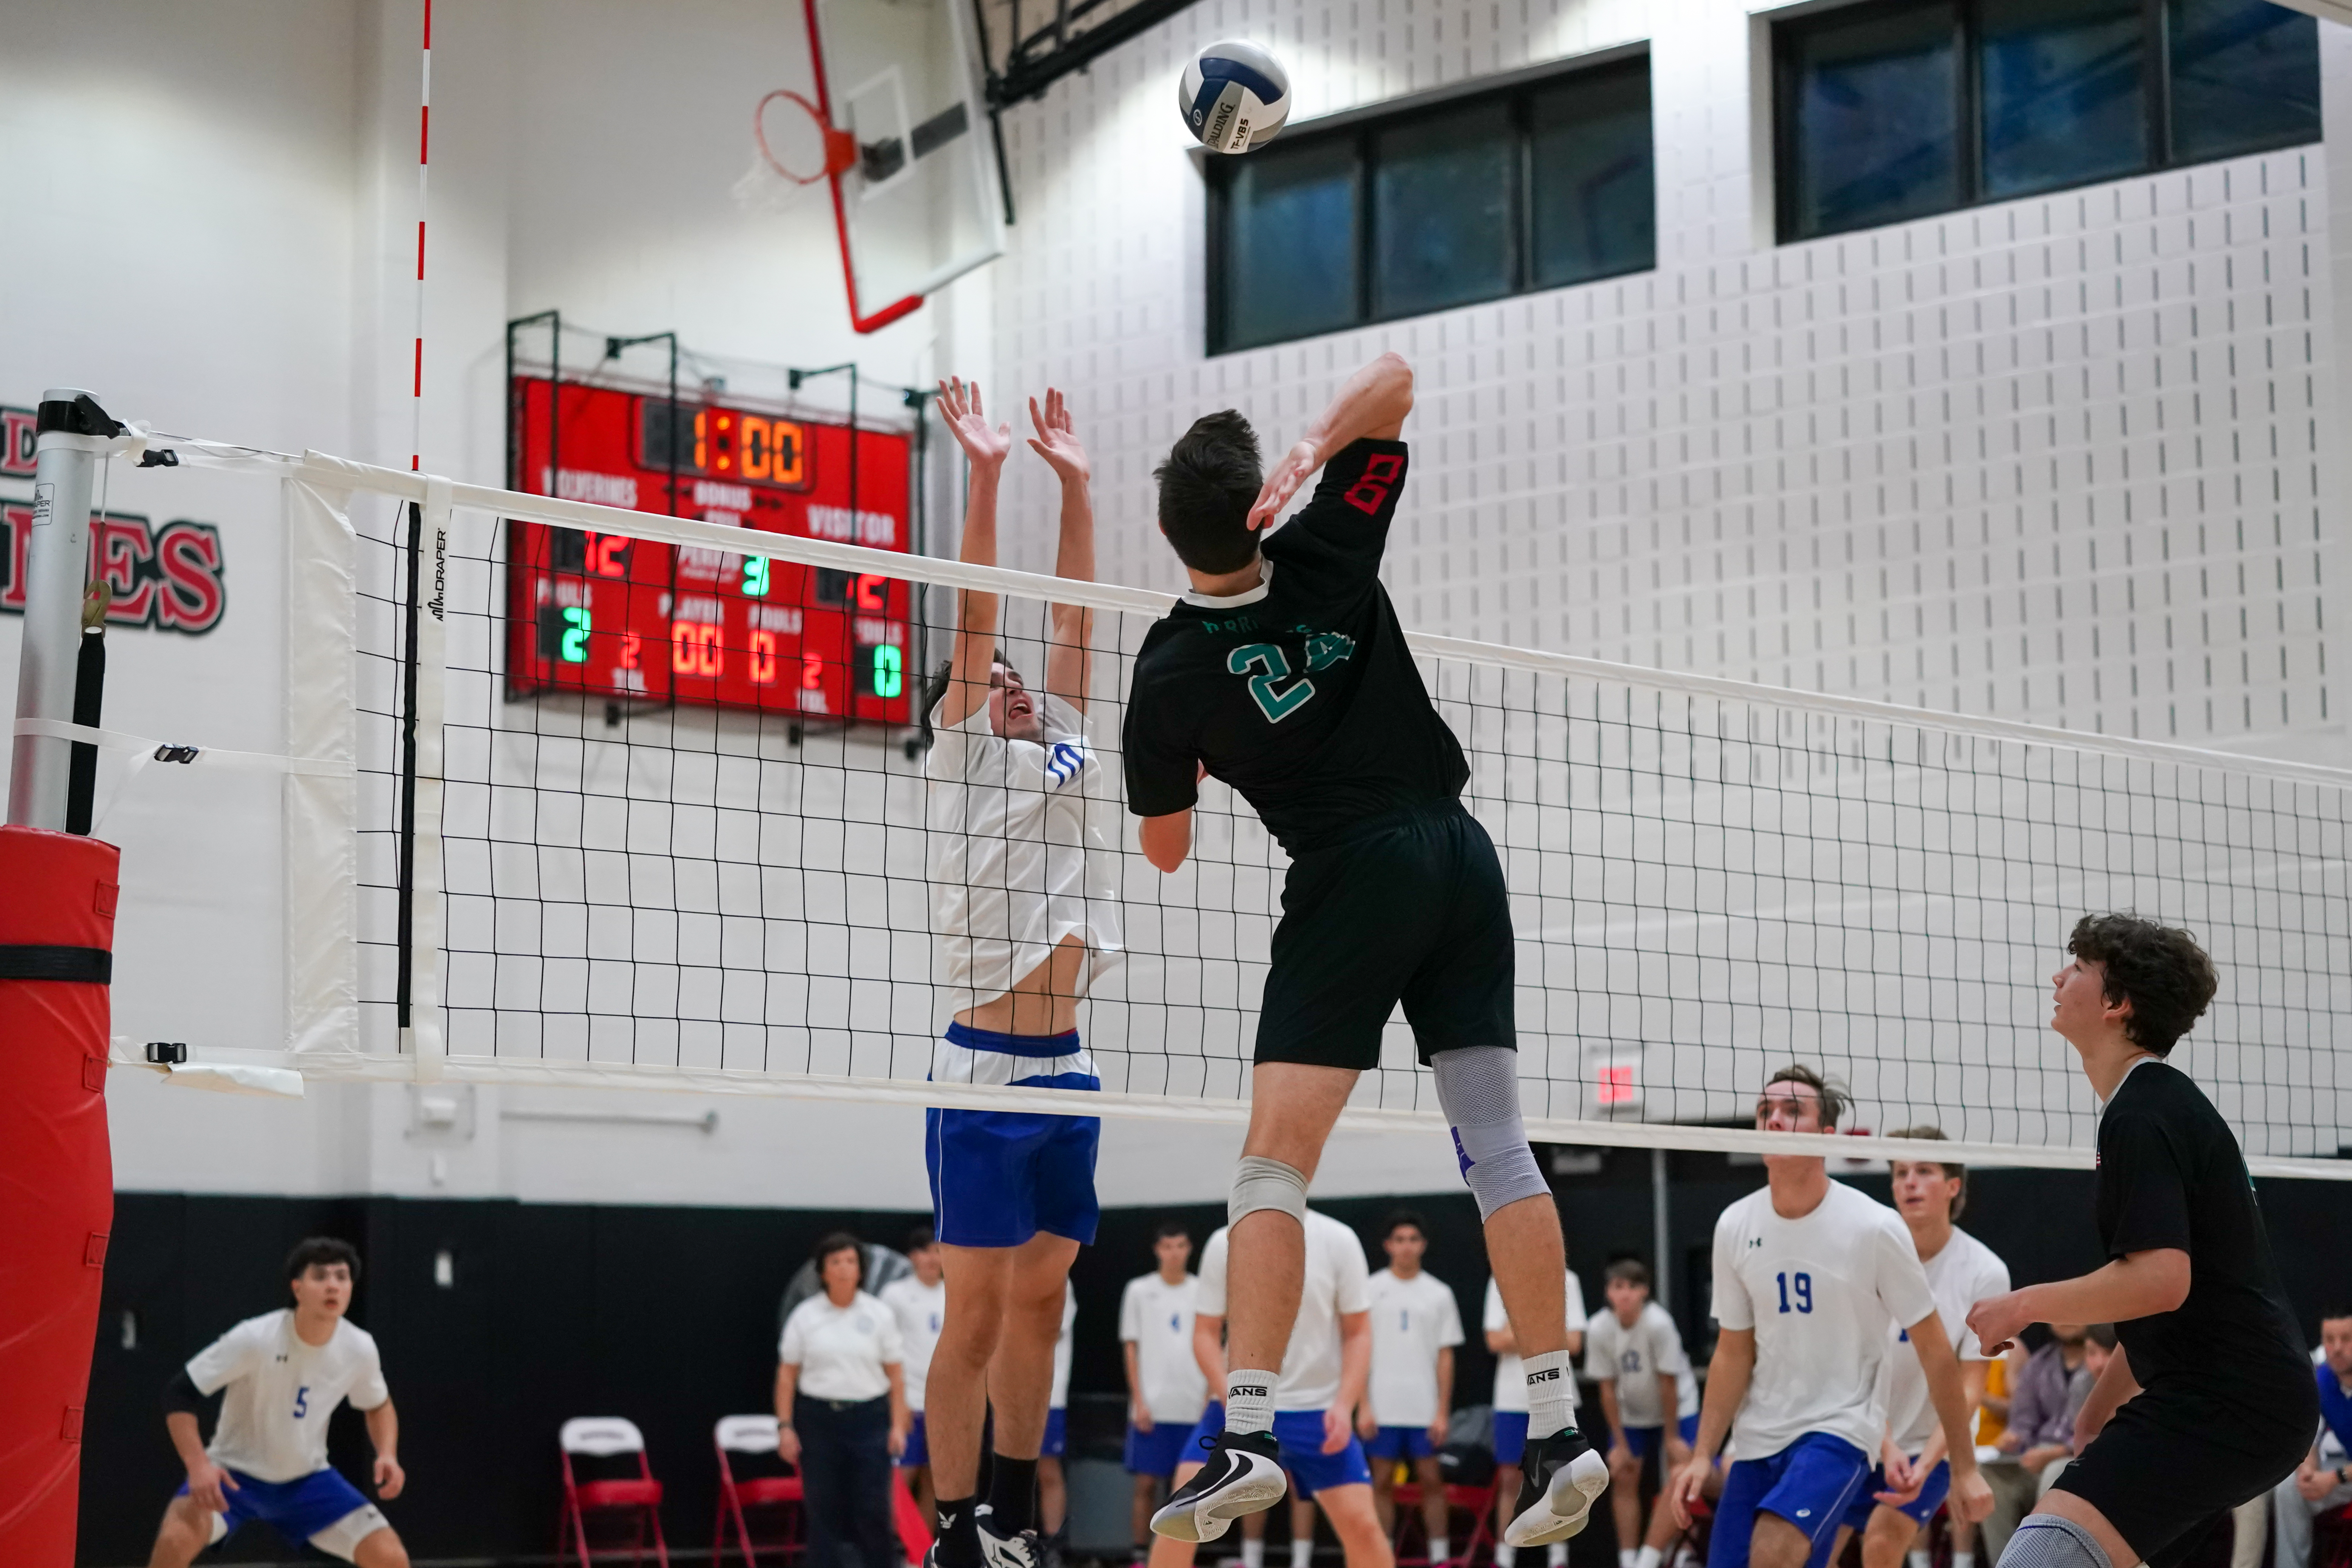 Westhampton Beach junior Ryan Barnett goes up for one of his 15 kills.